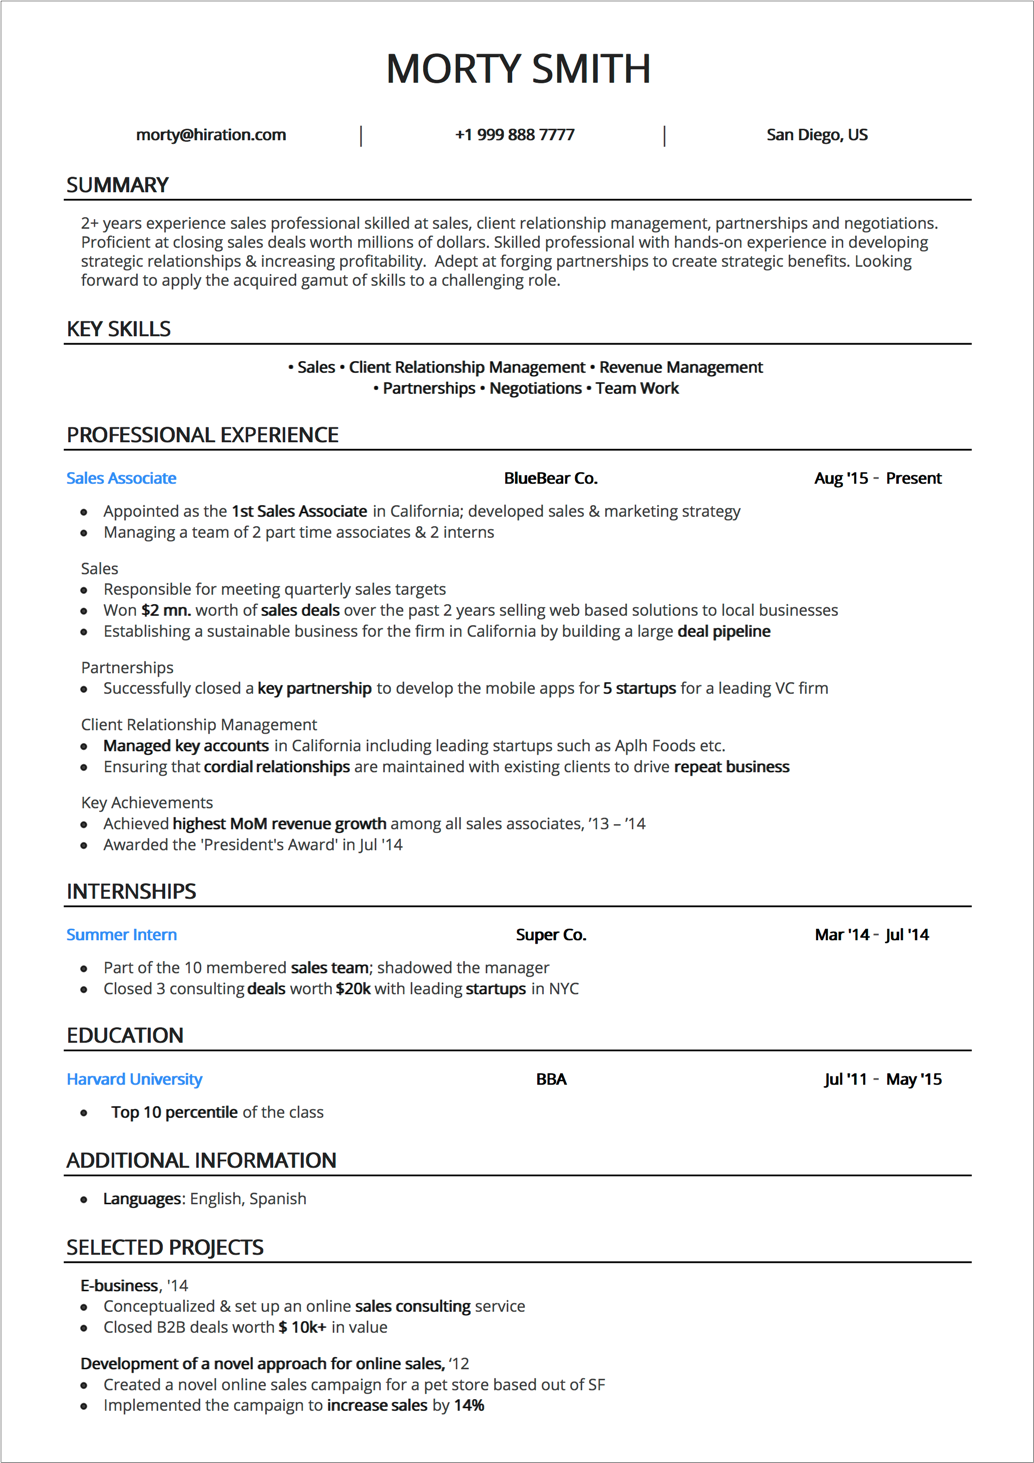 resume lay out